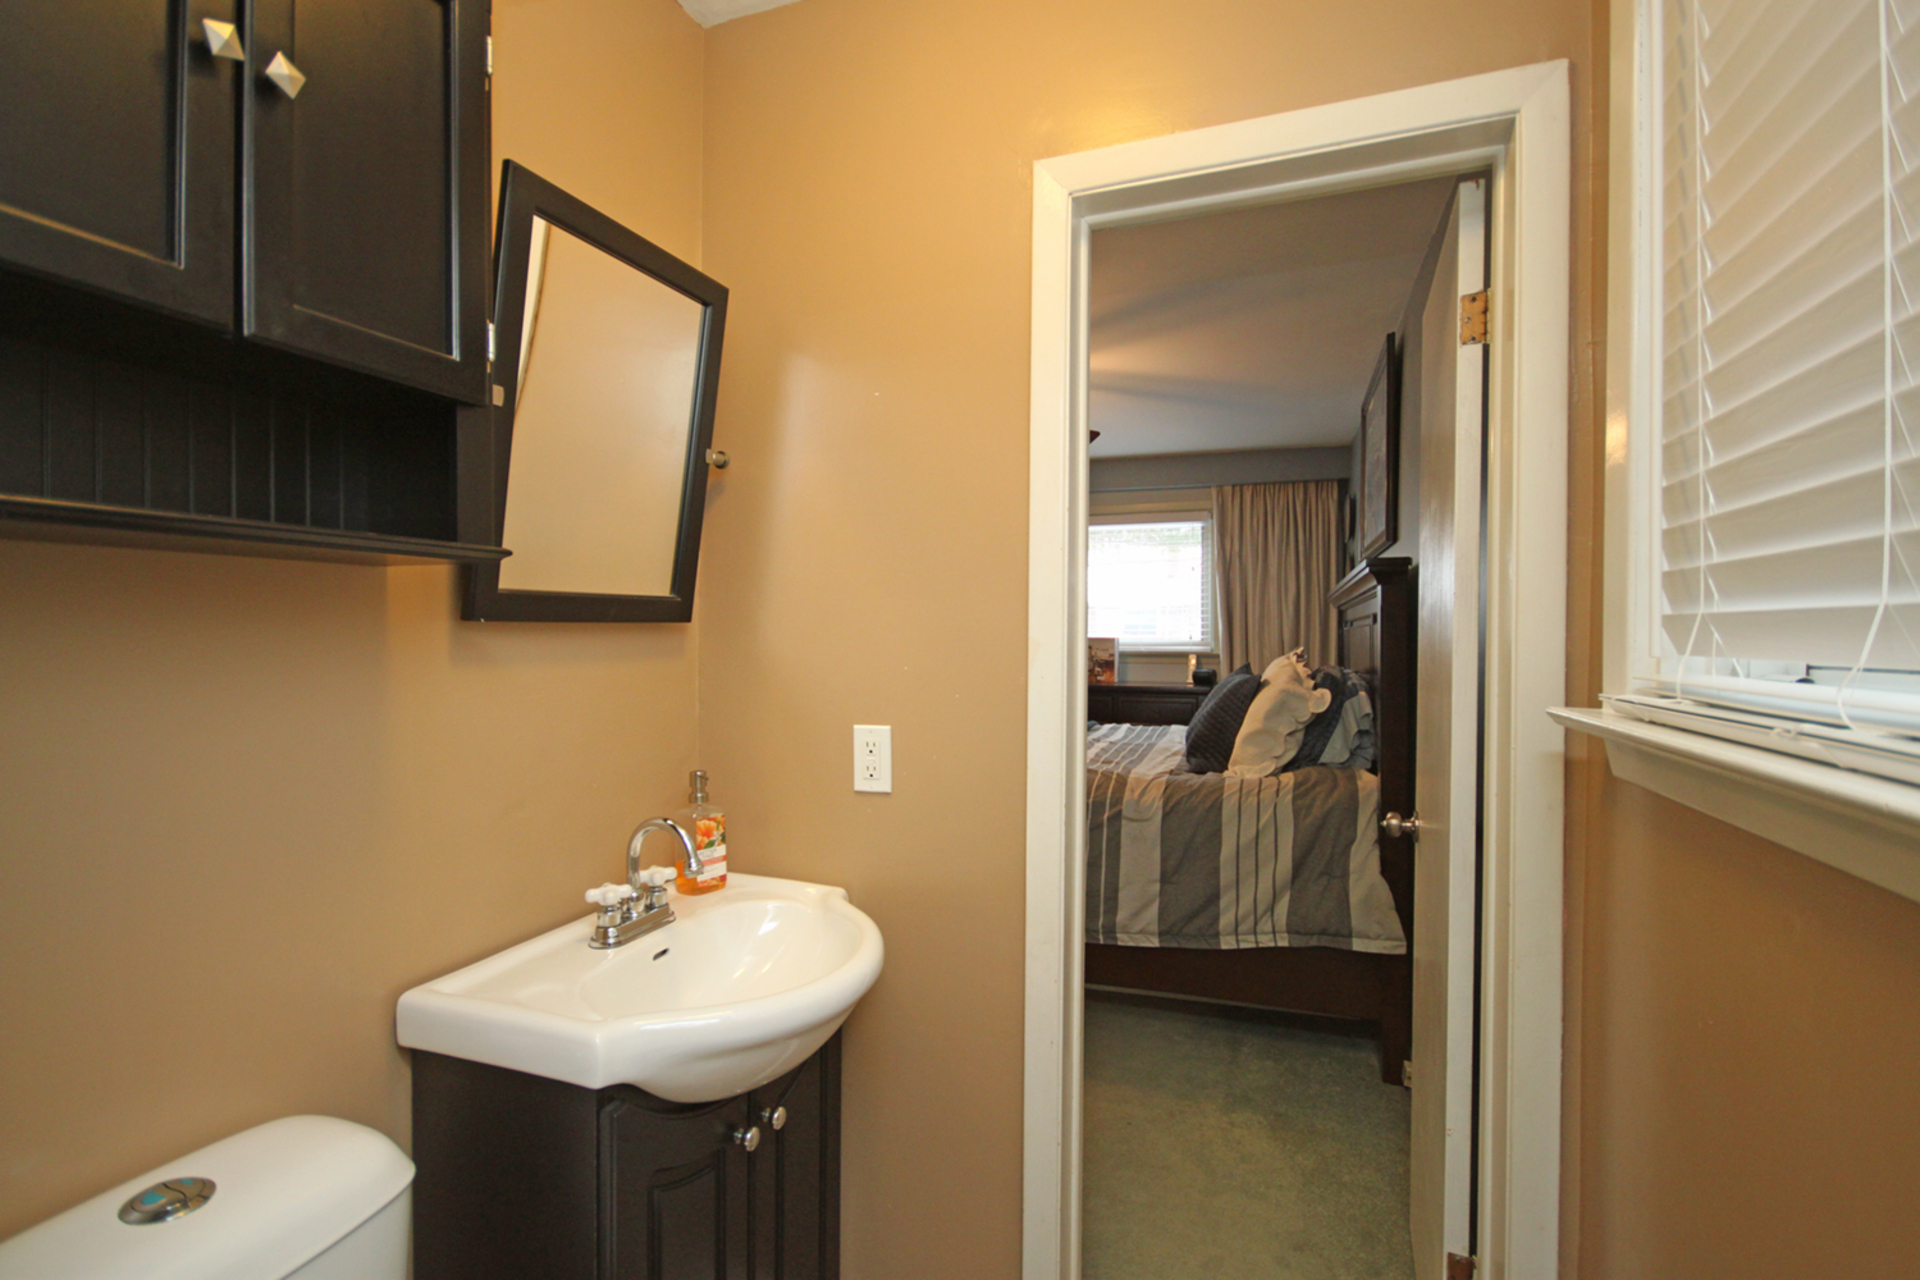 2 Piece Ensuite Bathroom at 53 Dukinfield Crescent, Parkwoods-Donalda, Toronto